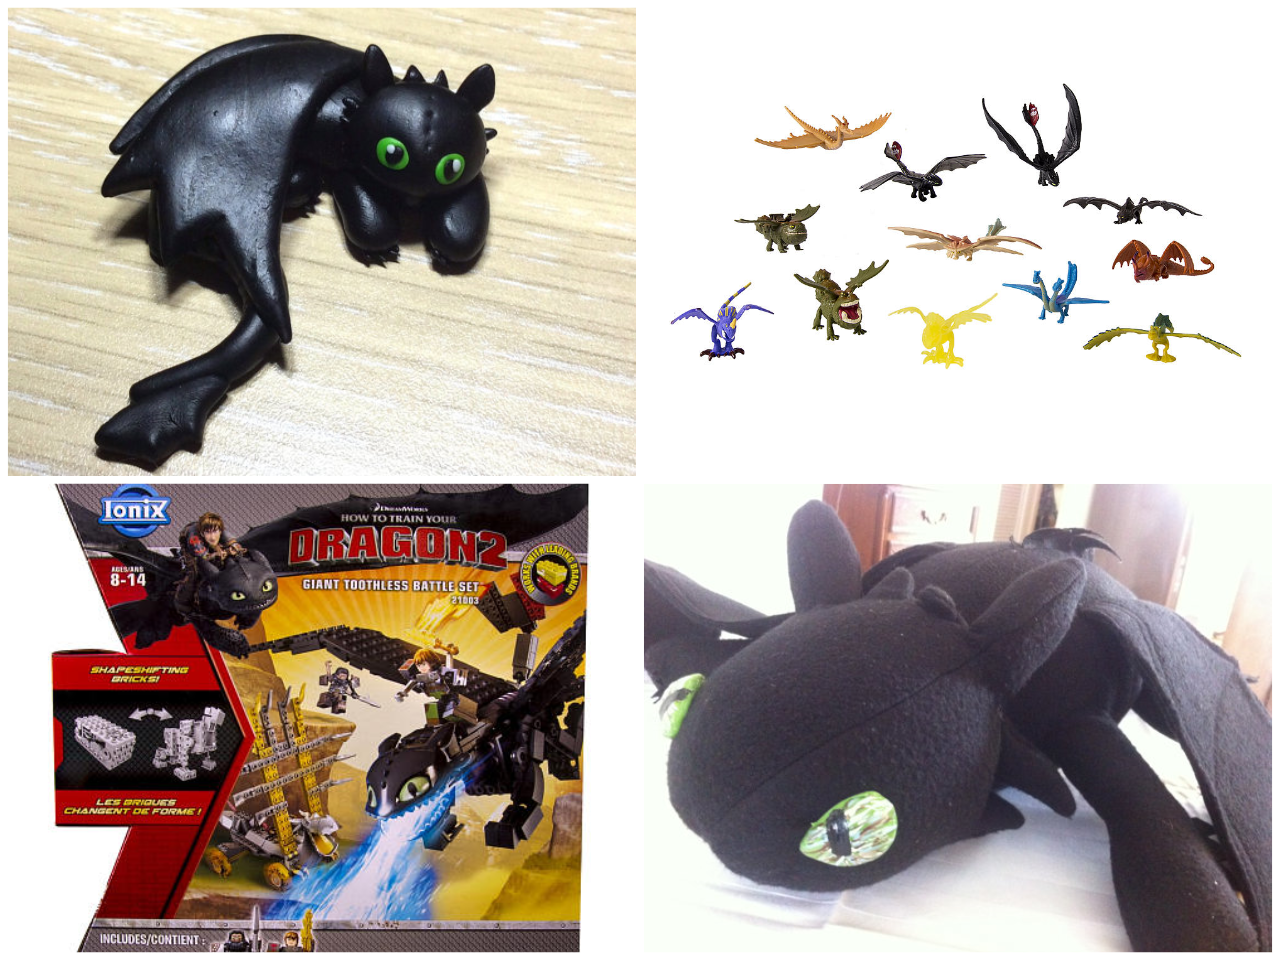 How to Train Your Dragon  From Frozen to Lego Popular Themed Gift Ideas for  Kids. How To Train Your Dragon Bedroom Decor   PierPointSprings com